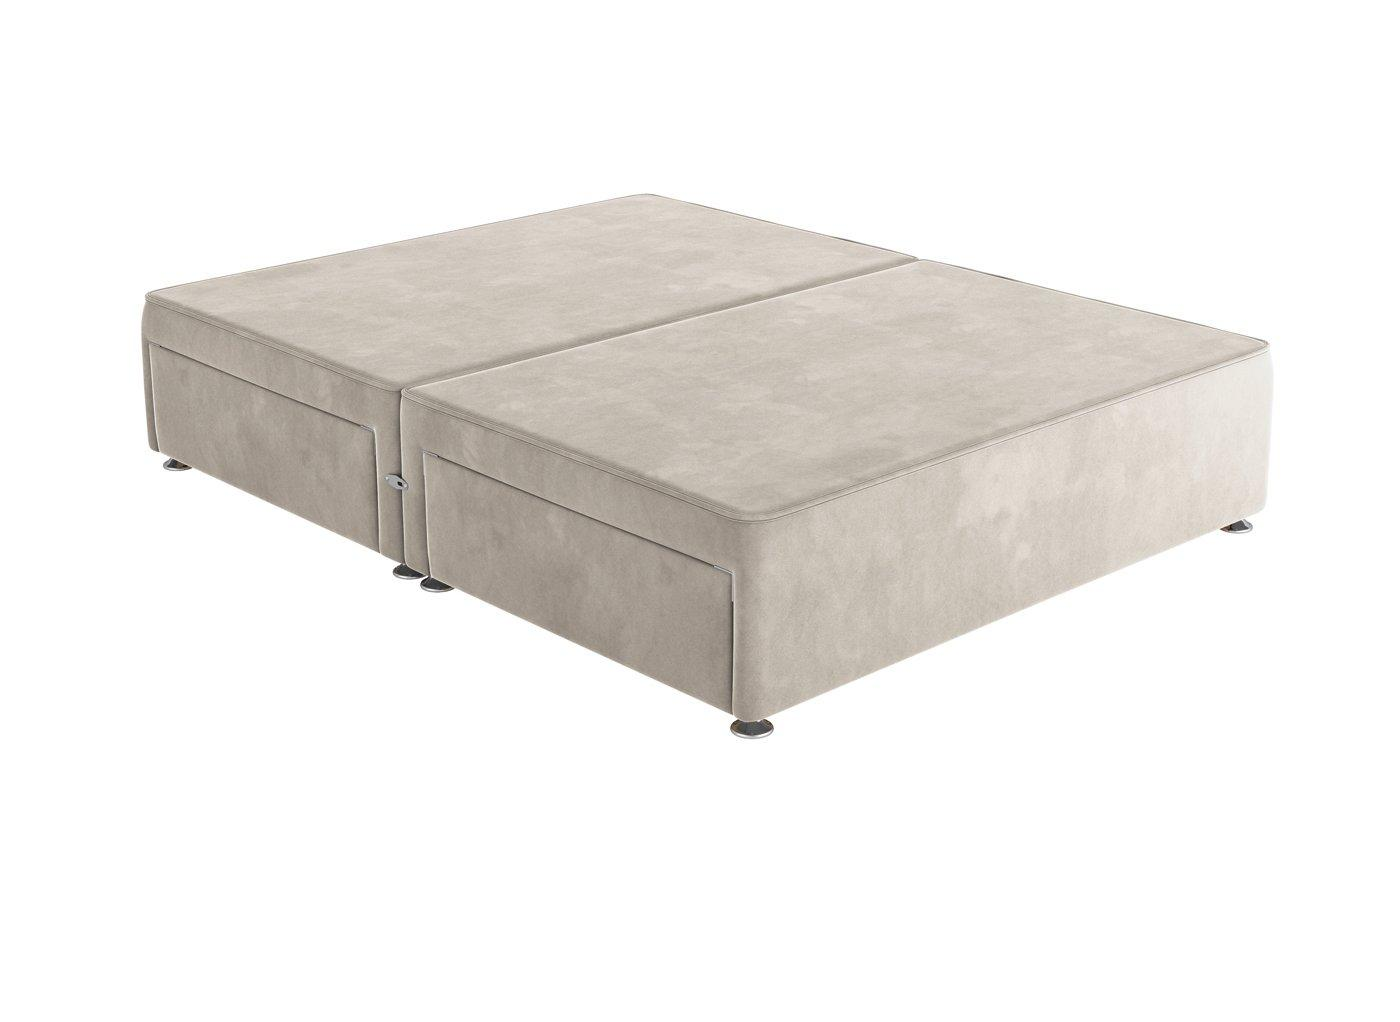 Sleepeezee D P/T 4 Drw Base Plush Ash 4'6 Double GREY